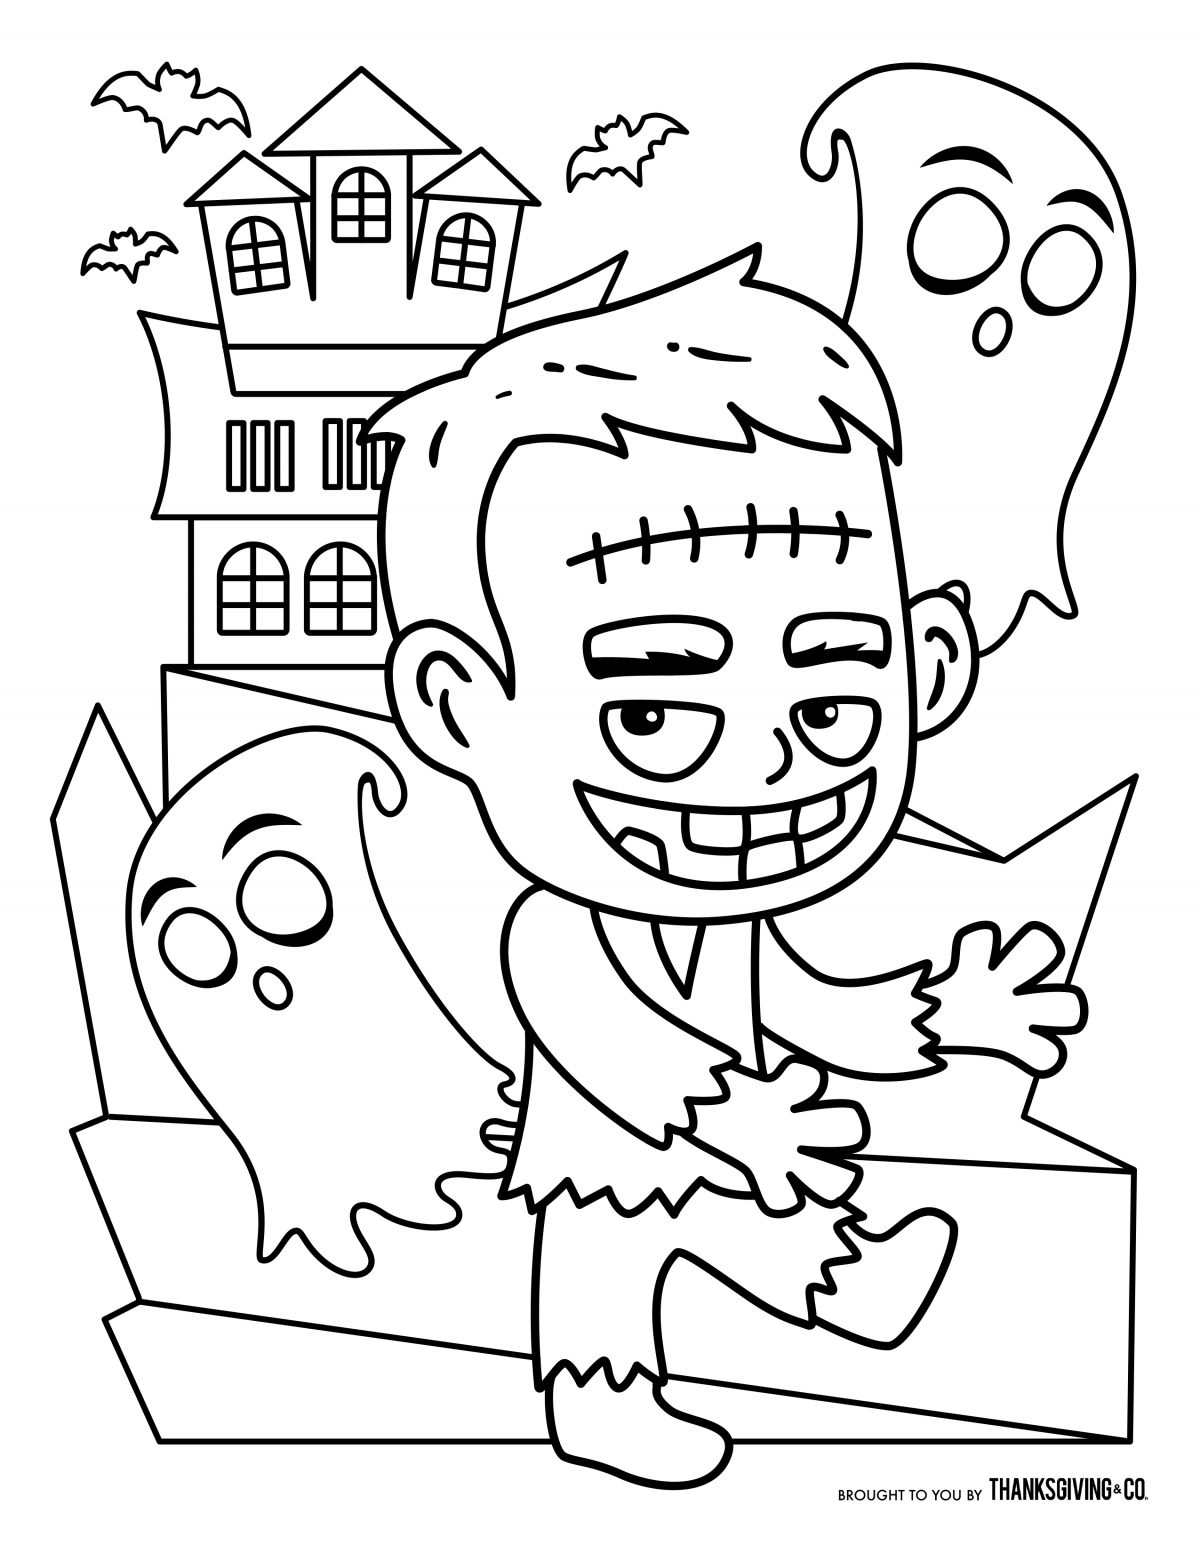 - Halloween Coloring Page Free Halloween Coloring Pages For Kids Or